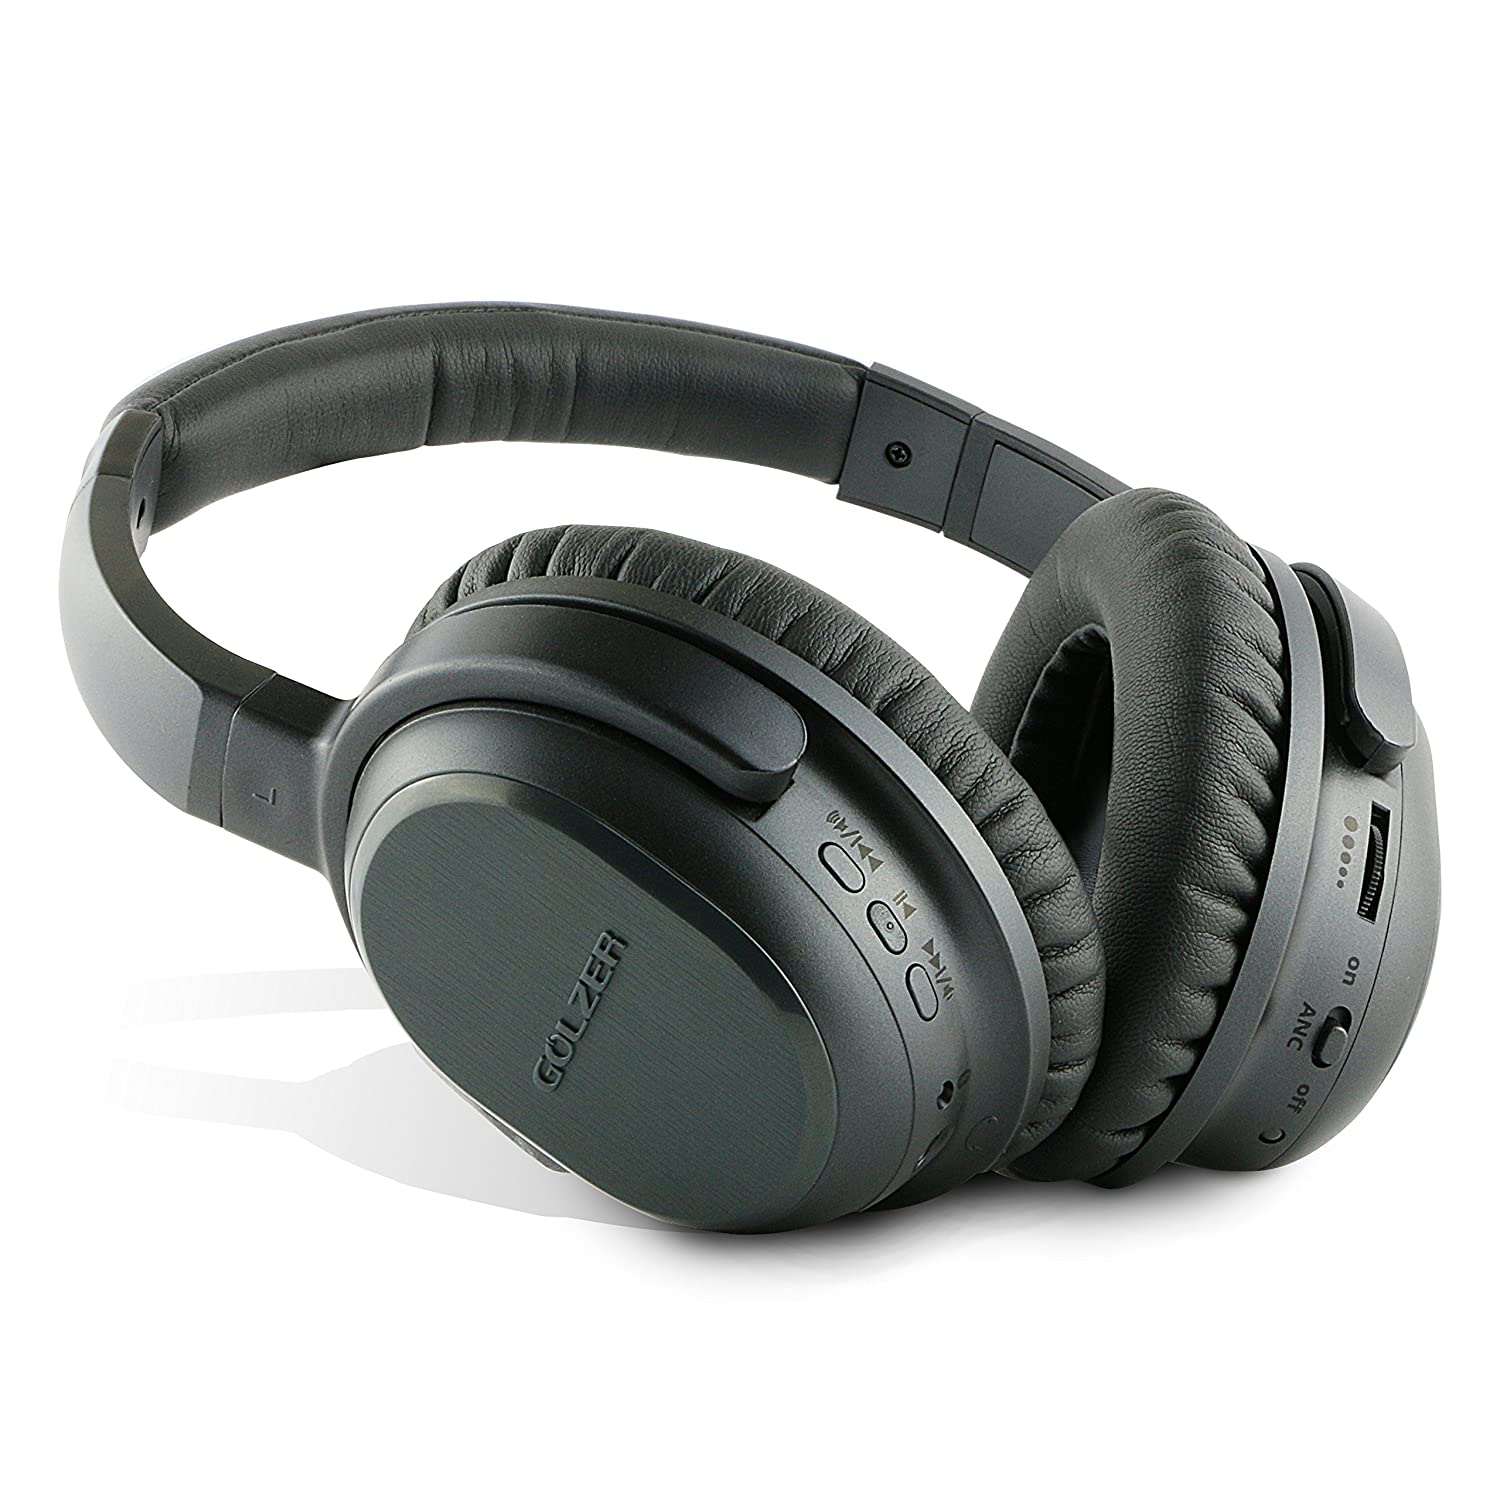 Top 8 Best Noise Cancelling Headphones Reviews in 2020 5